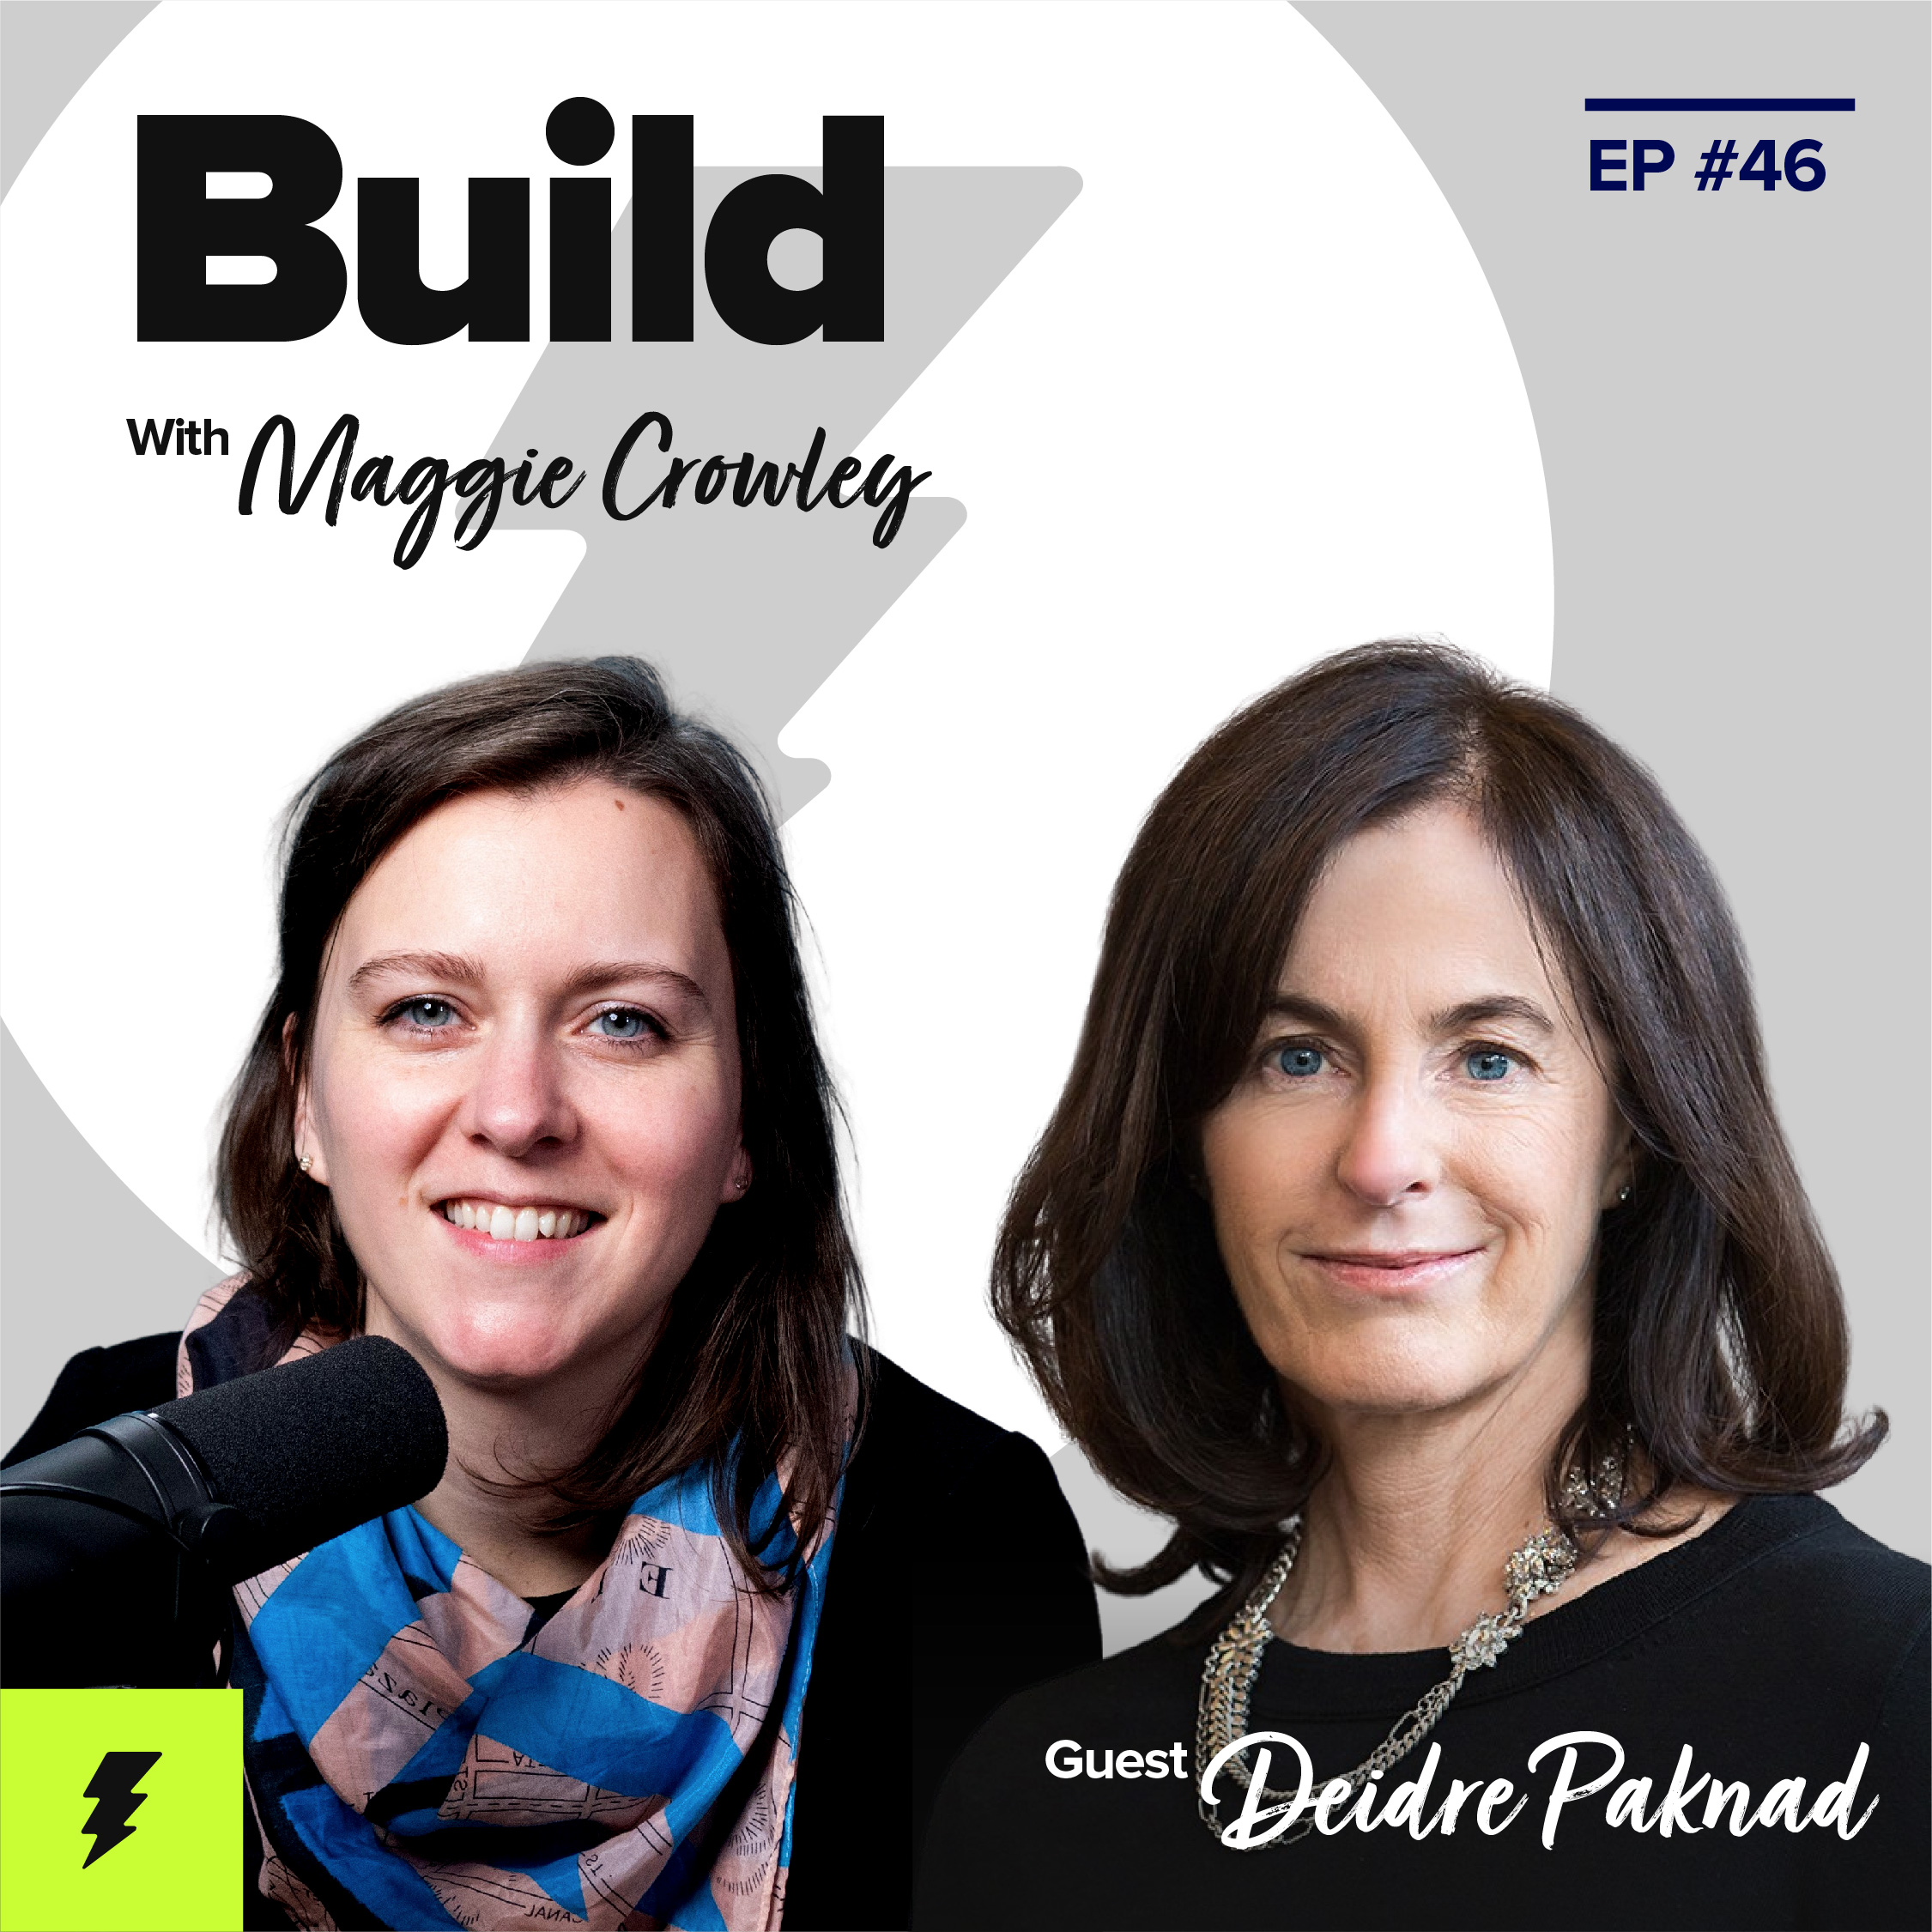 The OKR Episode (With WorkBoard's Deidre Paknad)